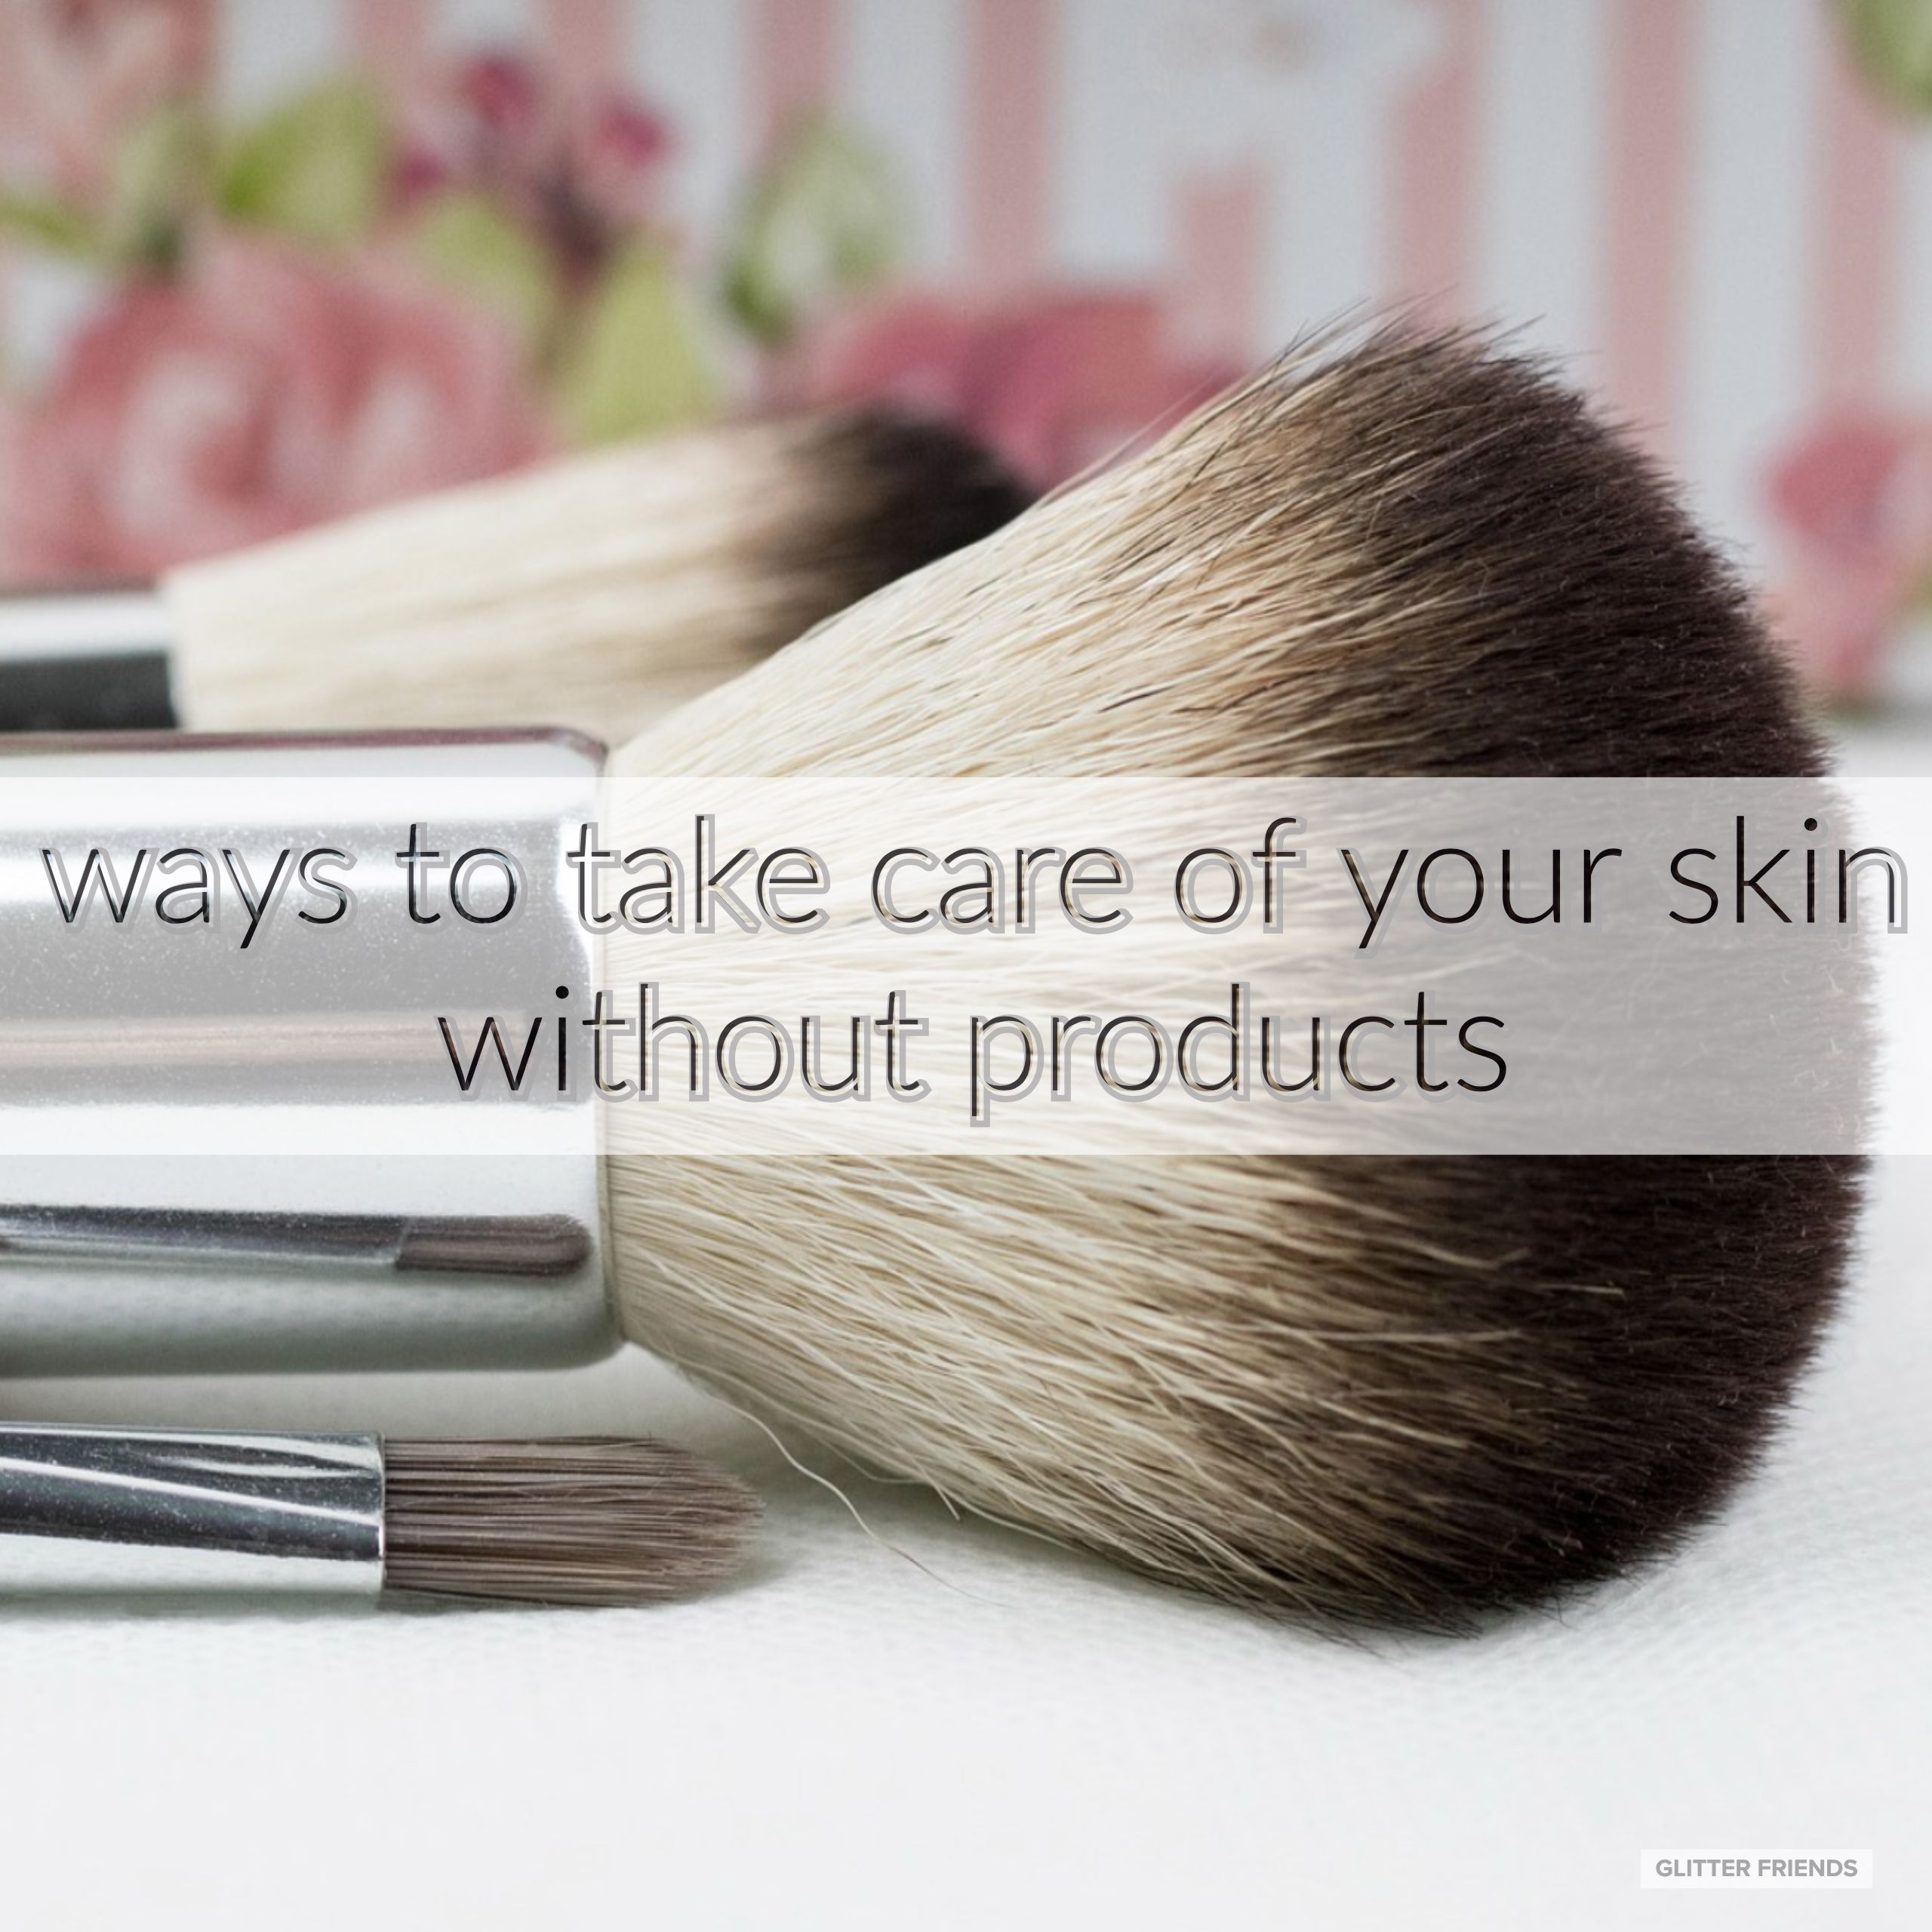 How often do you wash your makeup brushes? 🌸 🌸 Makeup